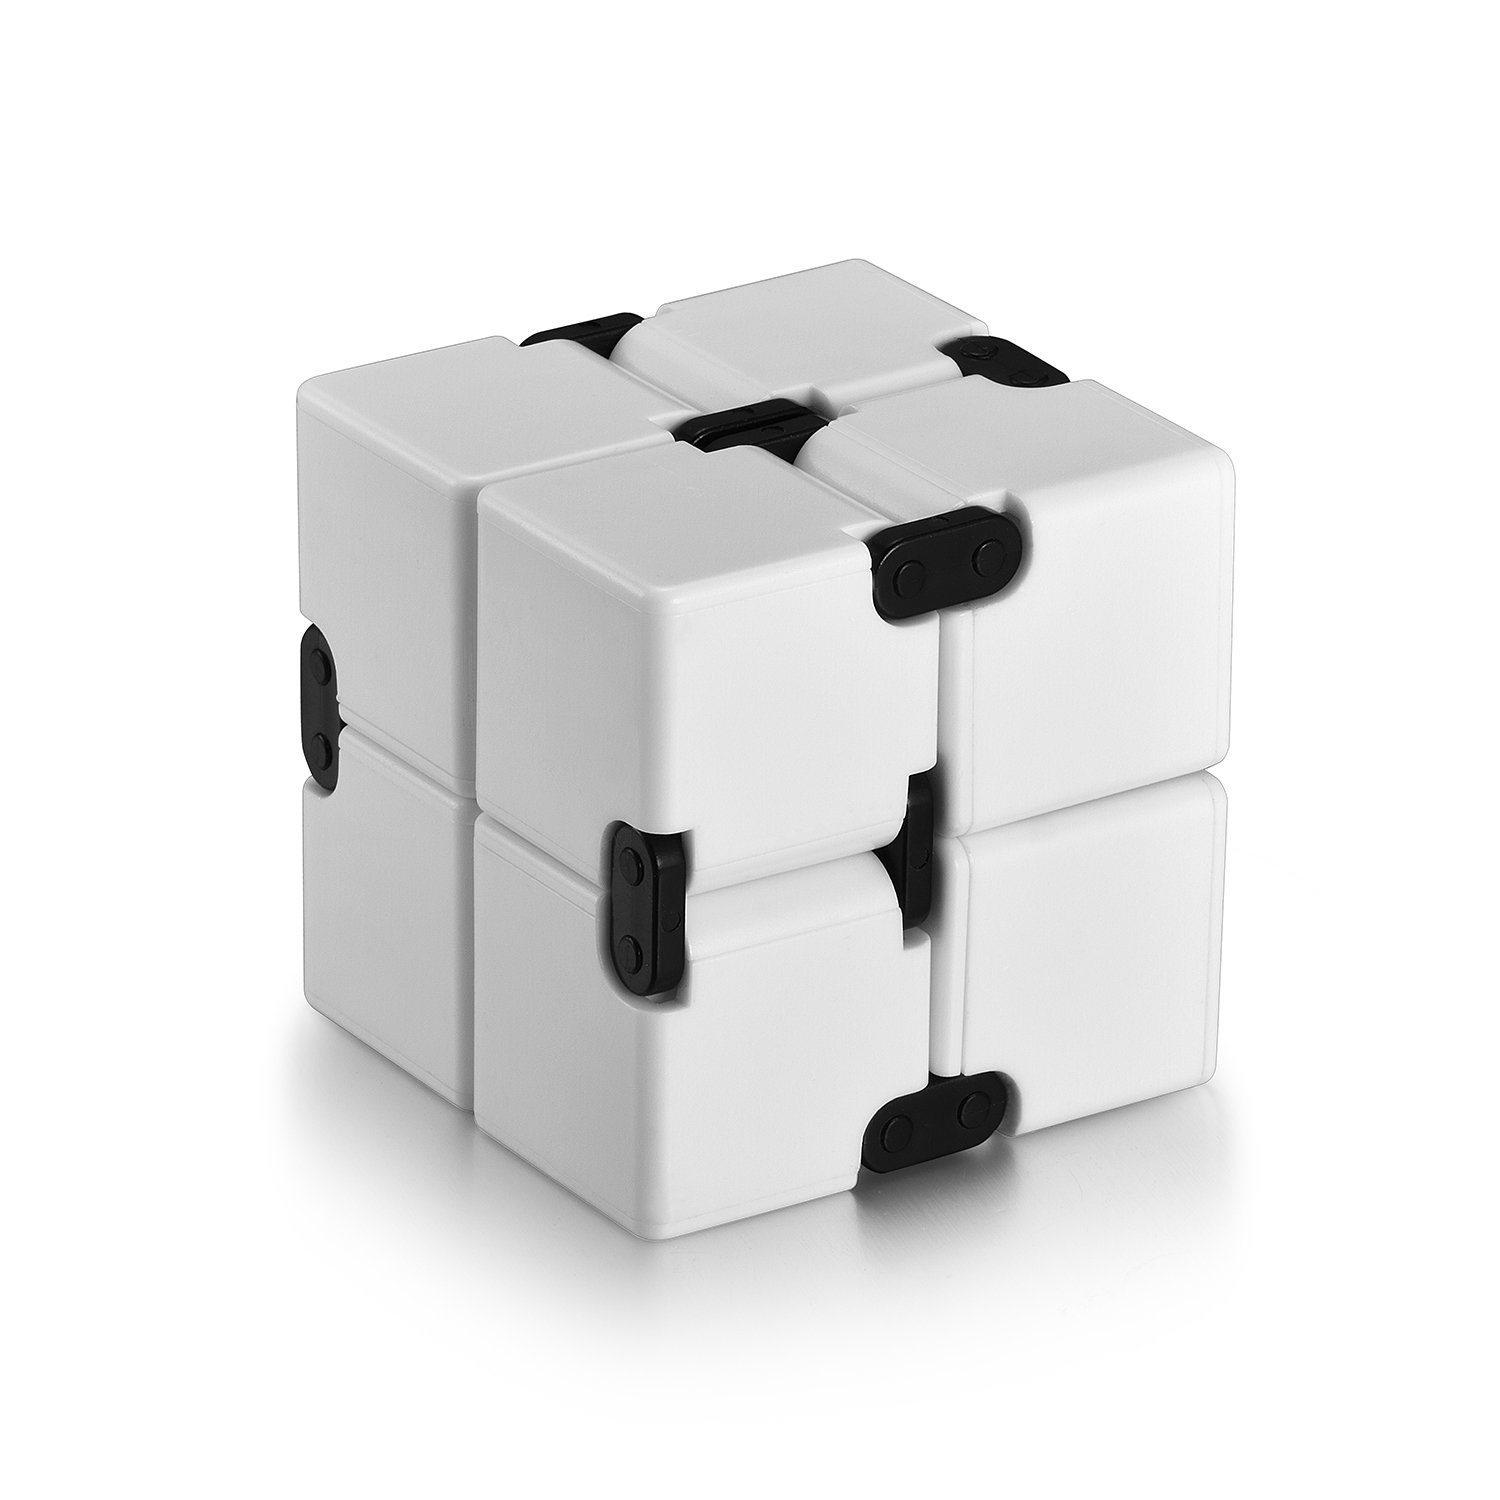 Infinity Cube Fidget Cube Toy for Adults & Kids Relieve Stress & Anxiety Hand Fidget Stress Reducer Best for ADD,ADHD,OCD,Anxiety Disorder,Autism by Ganowo (White)